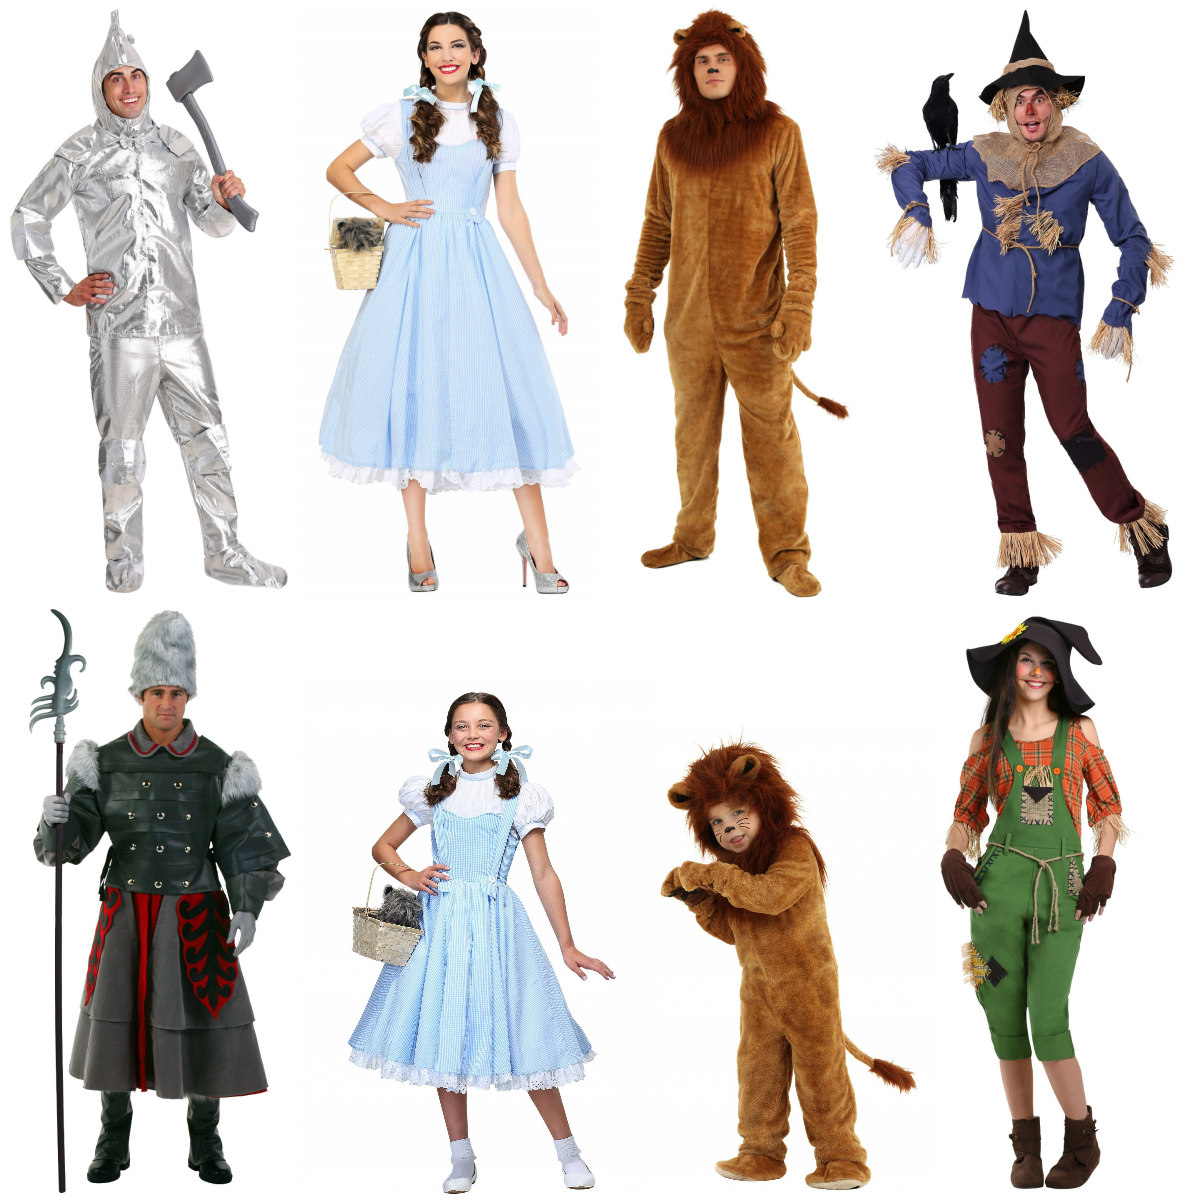 Wizard of Oz group costumes